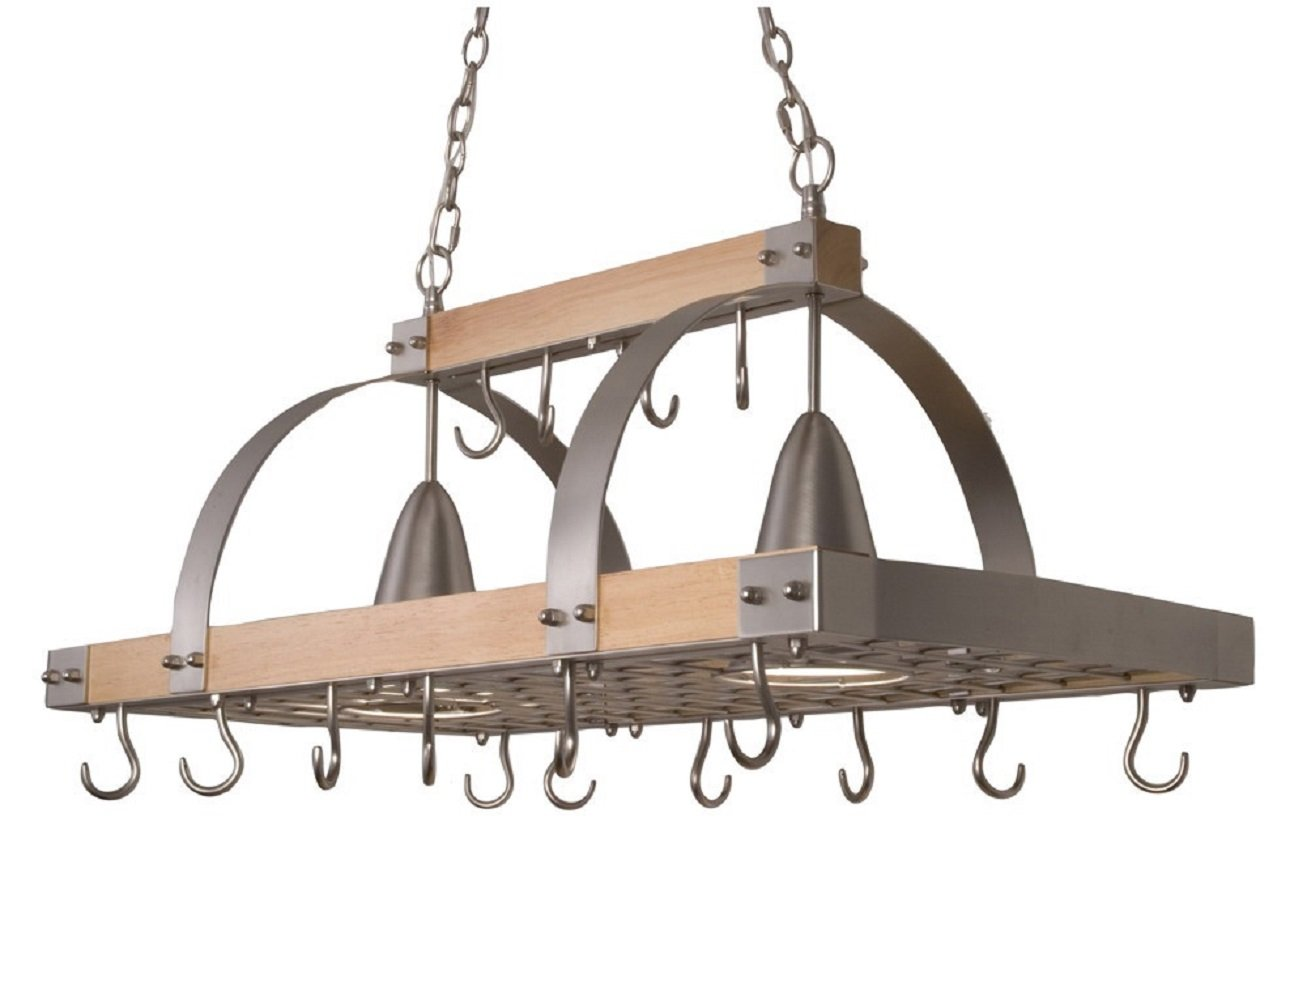 Elegant Designs PR1001 WOD 2 Light Kitchen Wood Pot Rack With Downlights,  Wood With Brushed Nickel Accents     Amazon.com